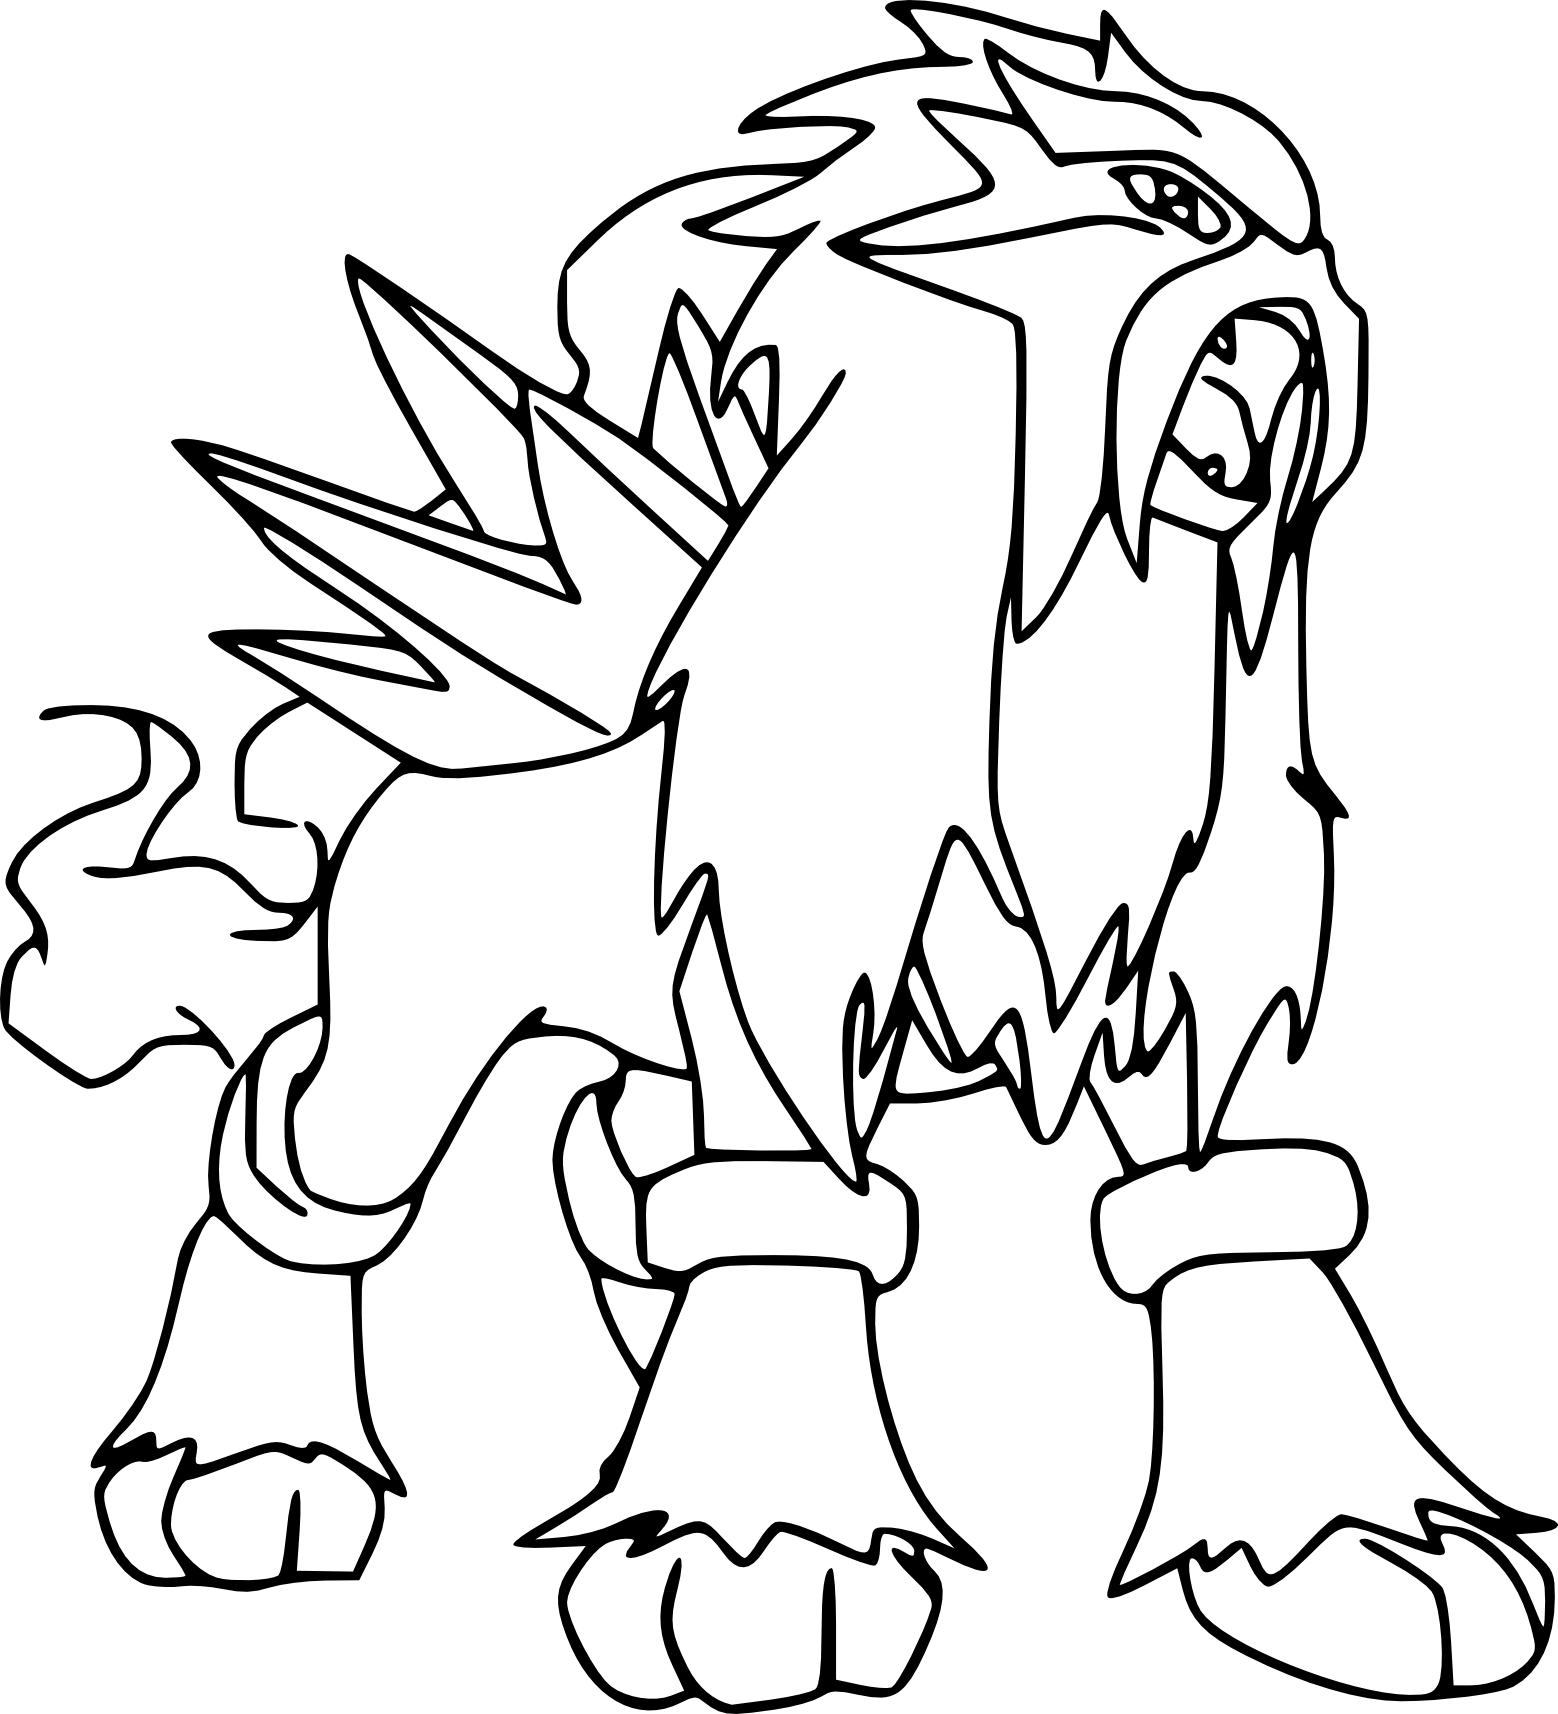 141 dessins de coloriage pokemon imprimer - Coloriage de pokemon x y ...